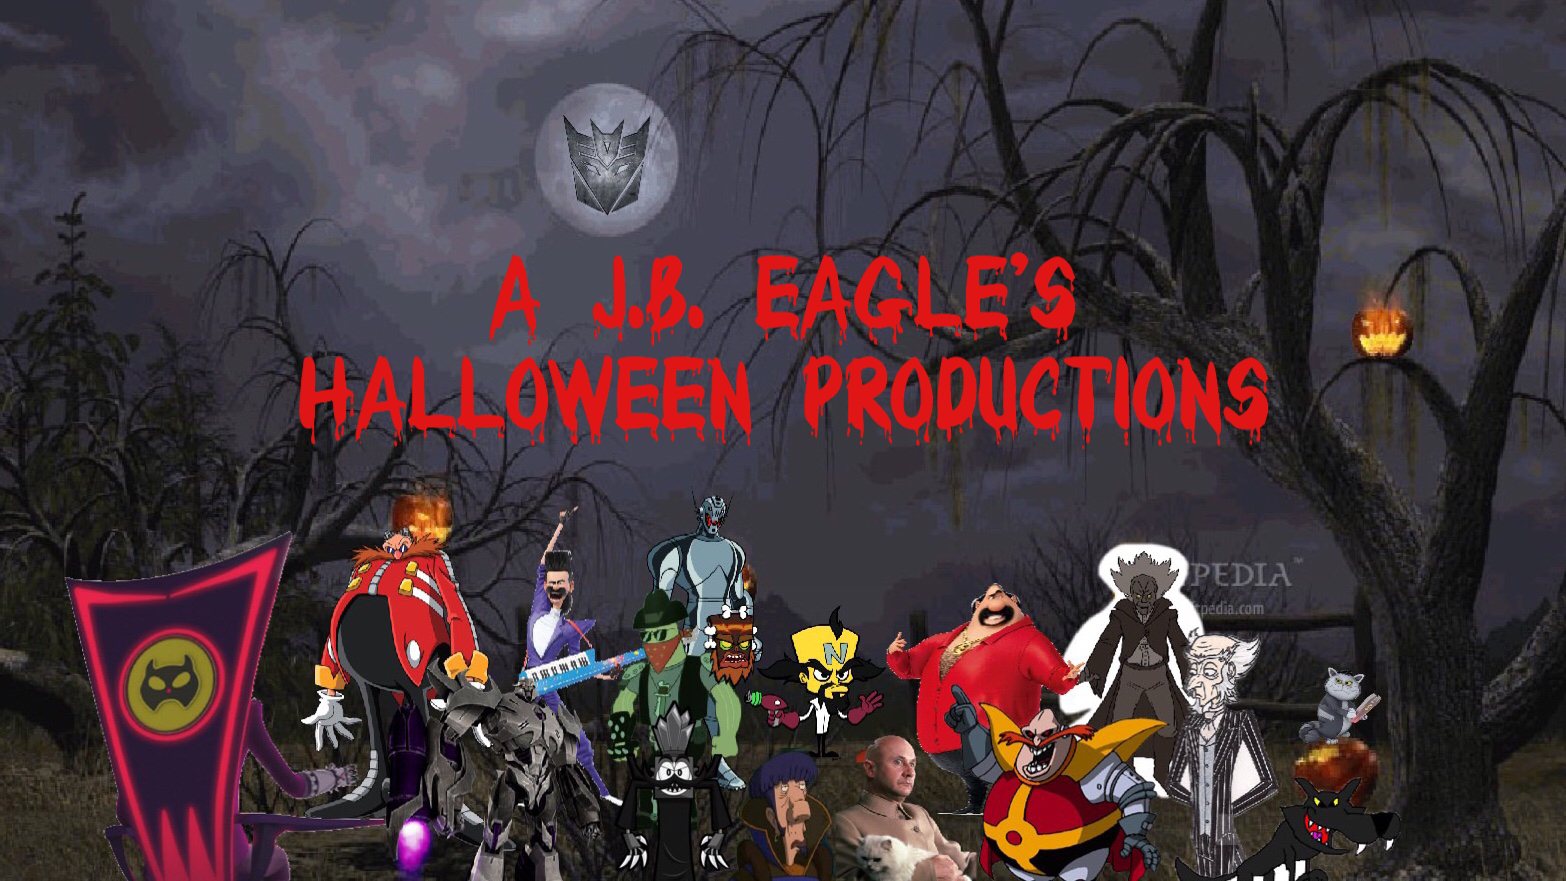 J.B. Eagle's Halloween Pictures